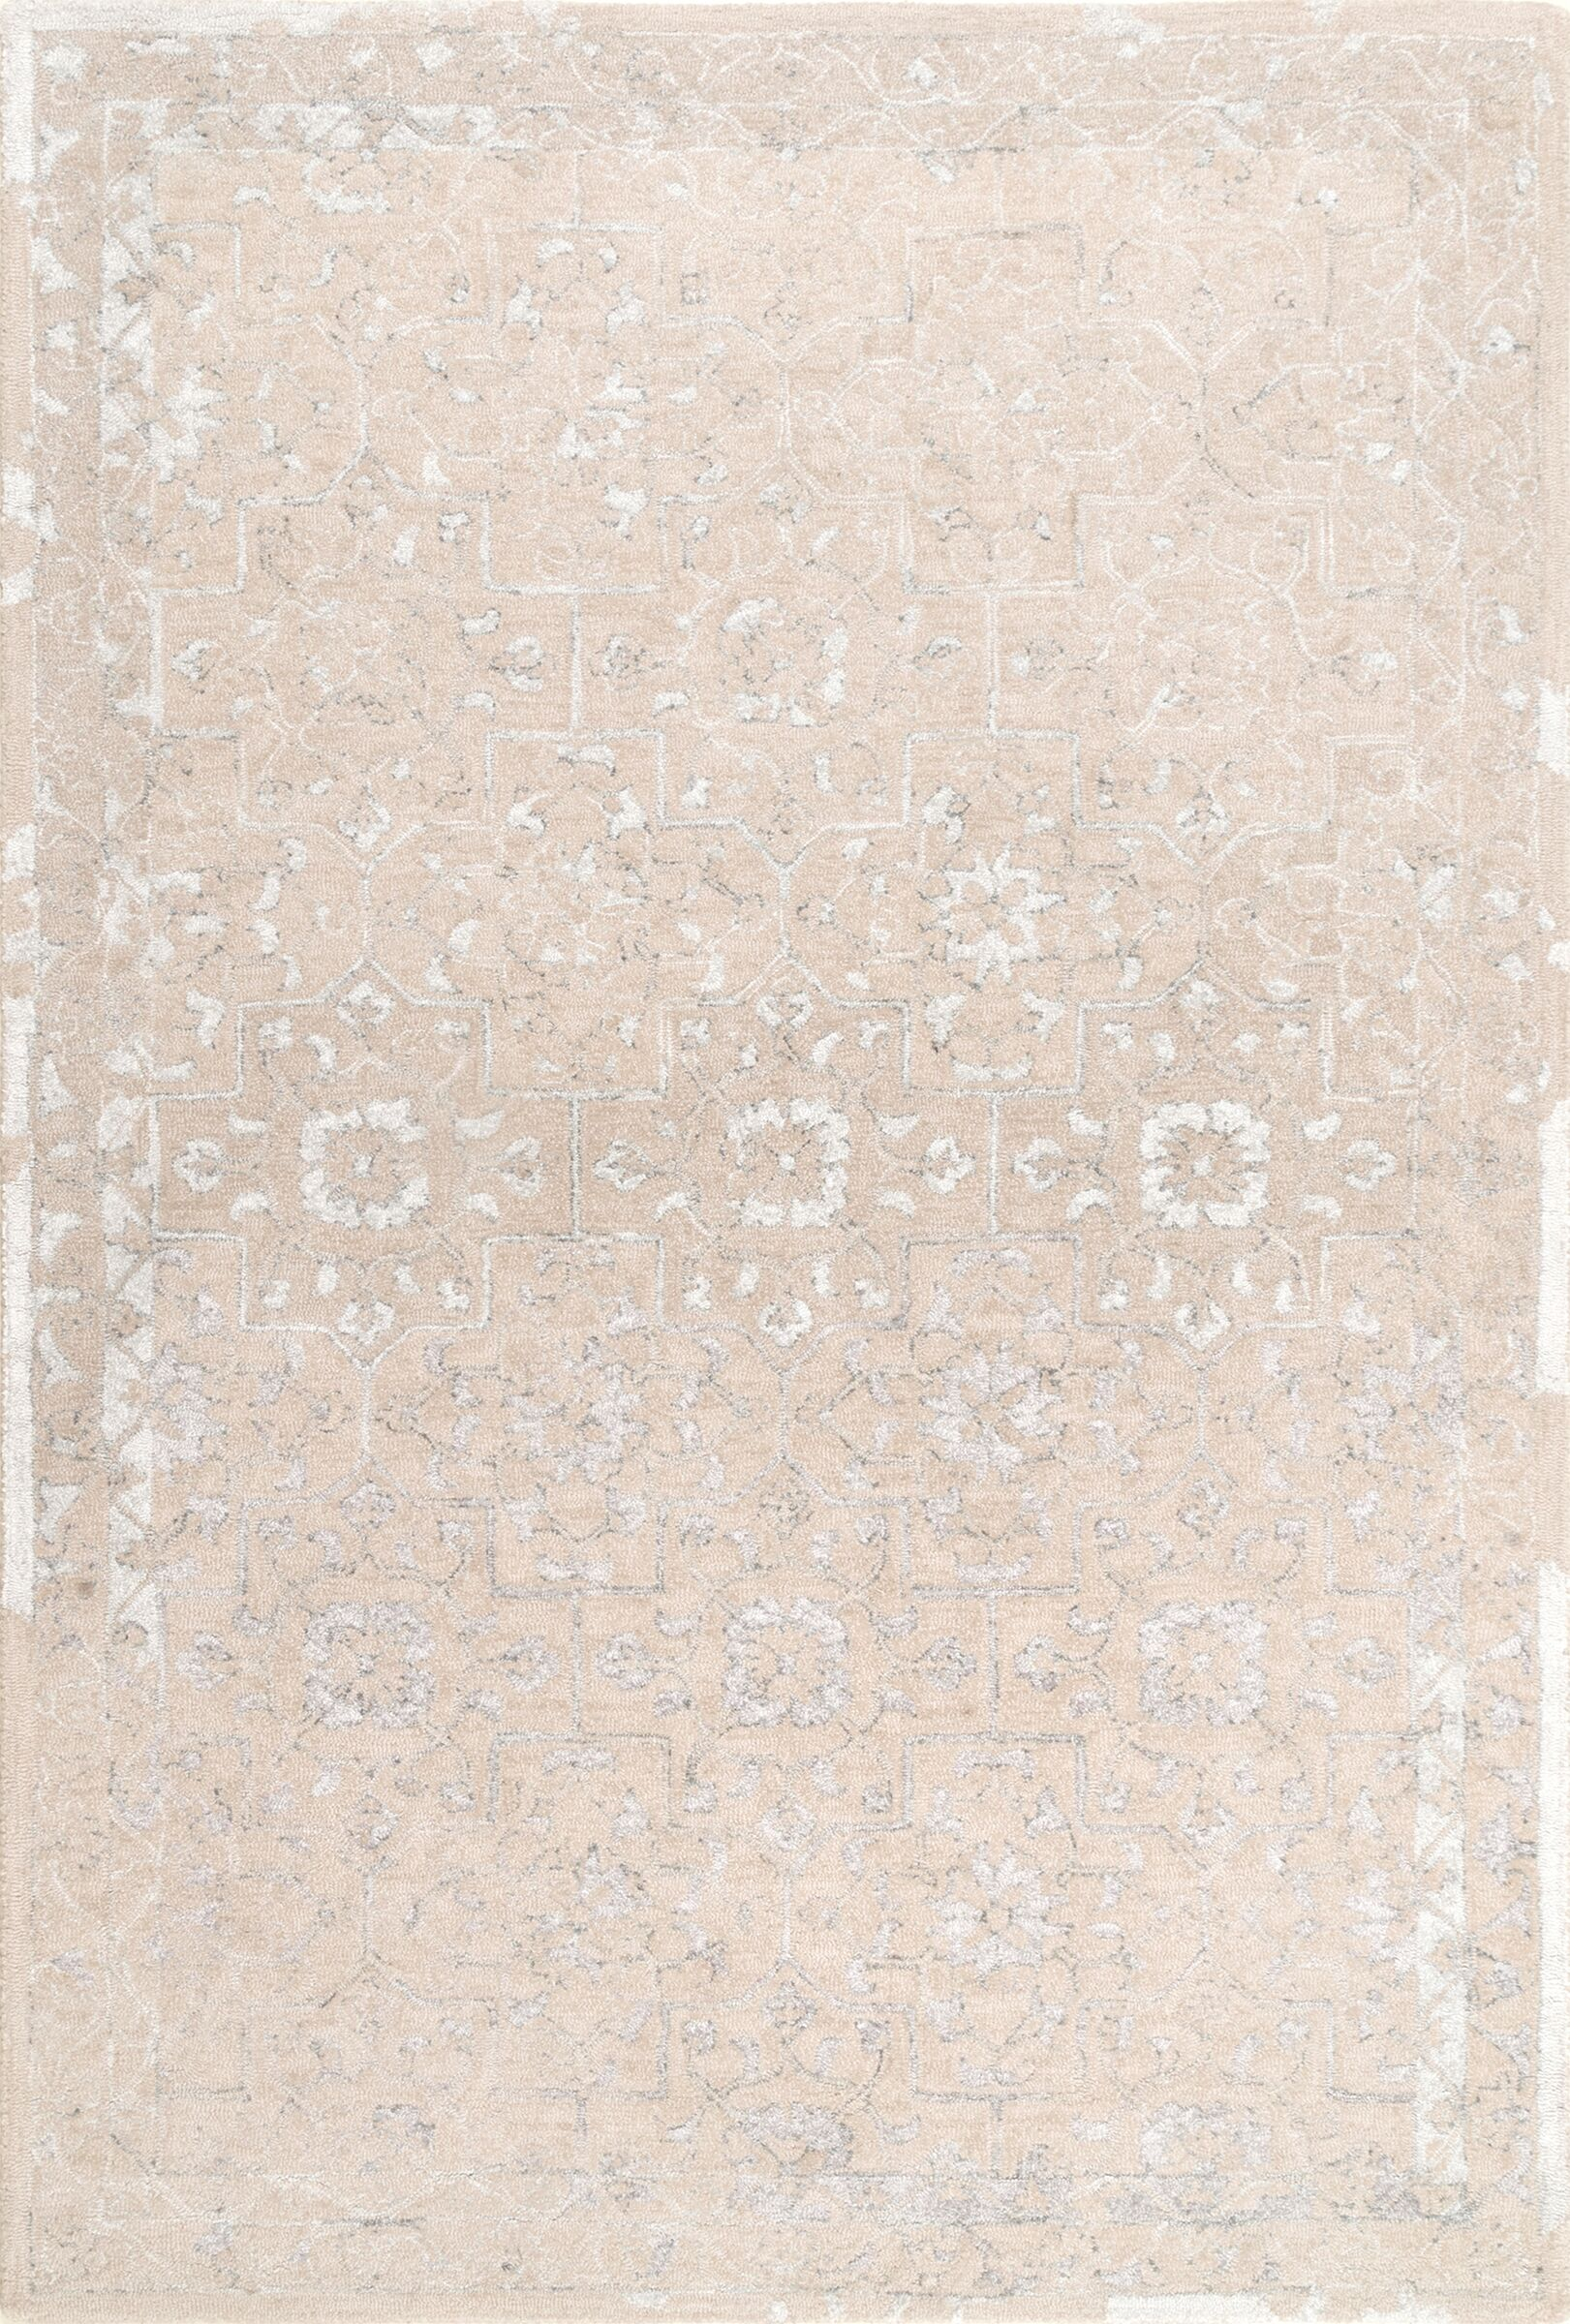 Axis Hand-Tufted Beige Area Rug Rug Size: Rectangle 7' 6